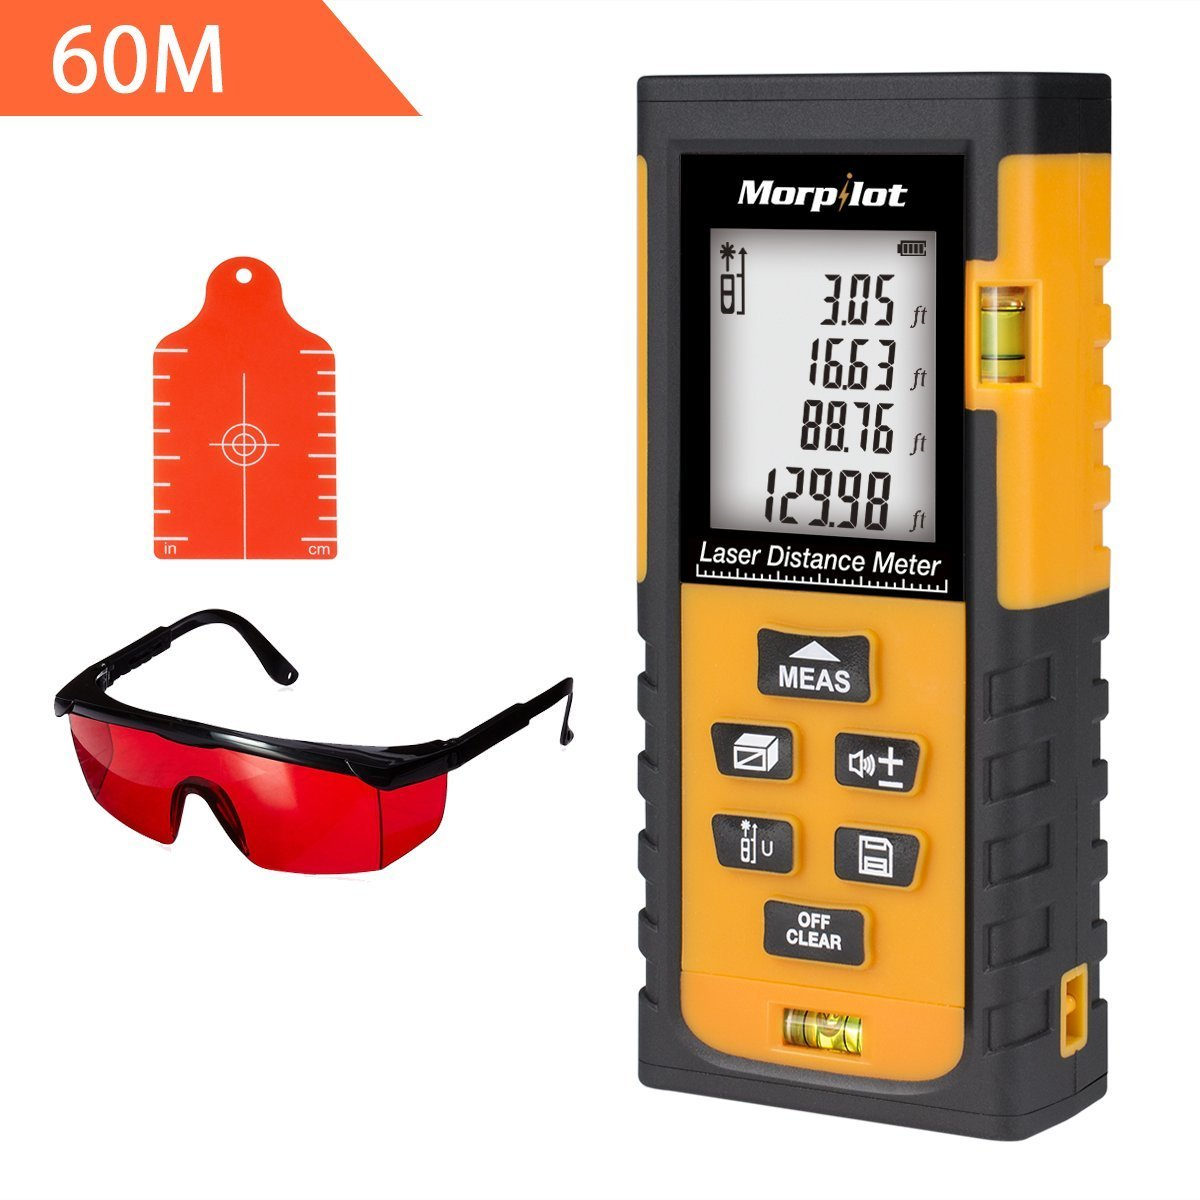 Laser Measure - Morpilot 196ft Laser Tape Measure with Target Plate & Enhancing Glasses, Laser Measuring tool with Pythagorean Mode, Measure Distance, Area, Volume Calculation